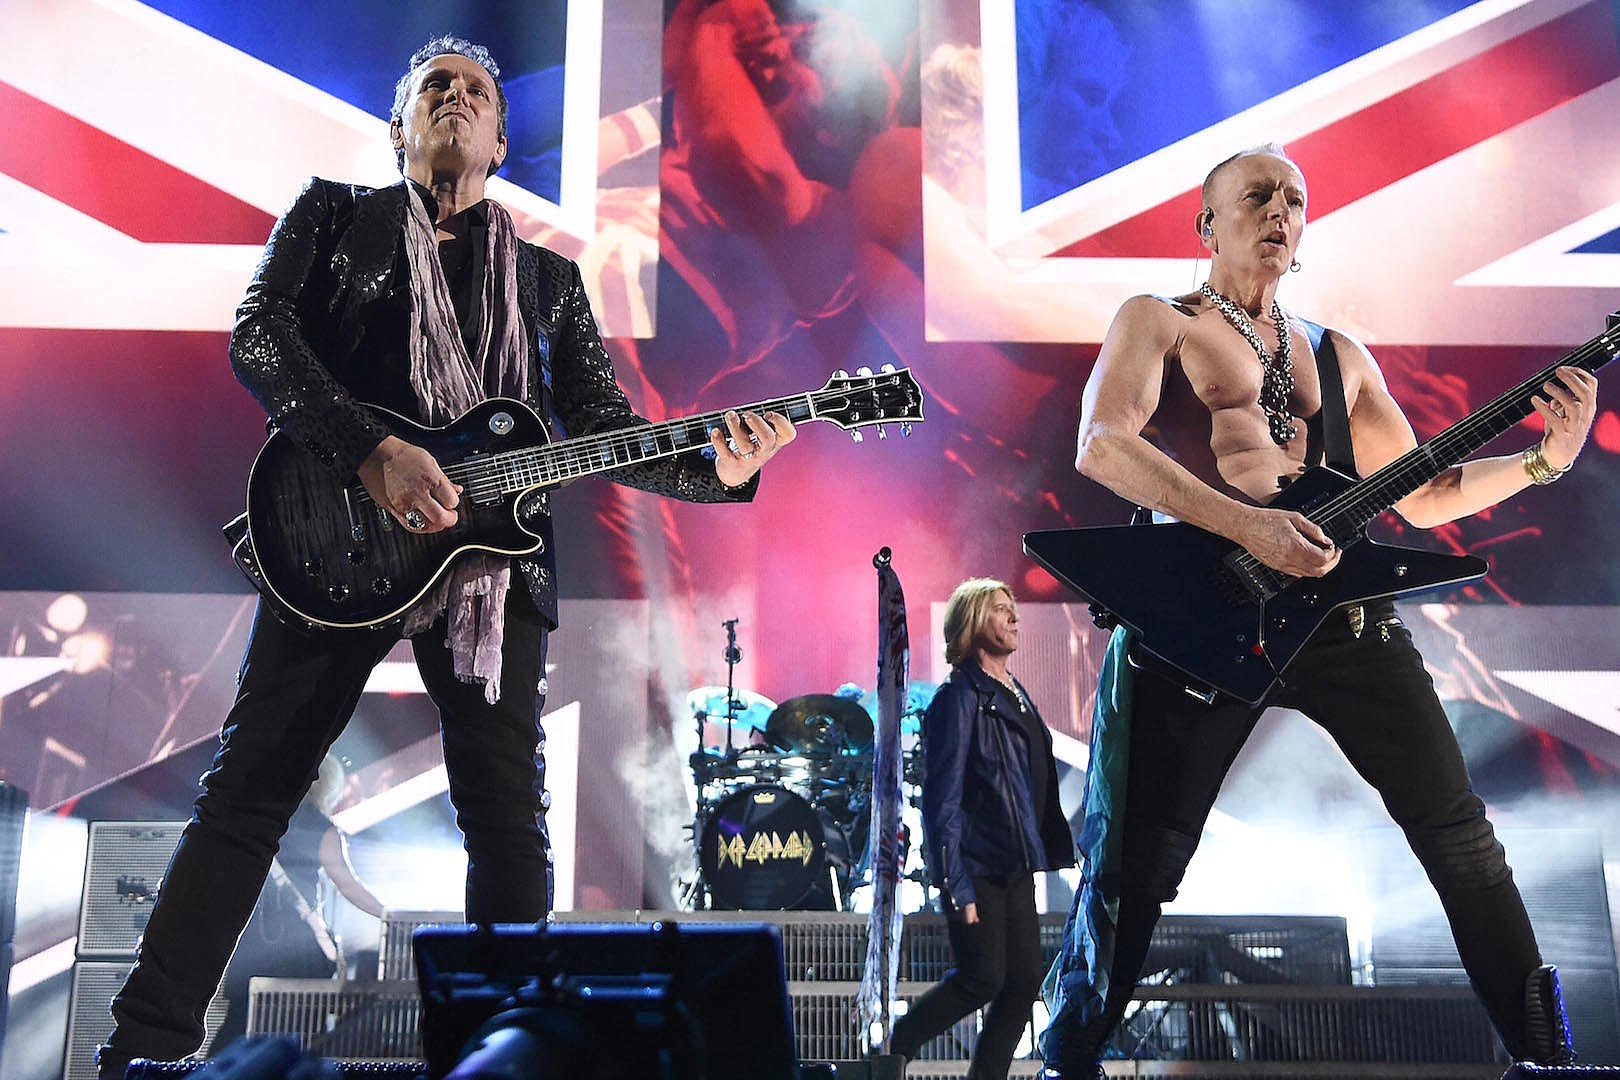 Watch Def Leppard's Rock and Roll Hall of Fame Induction Speech